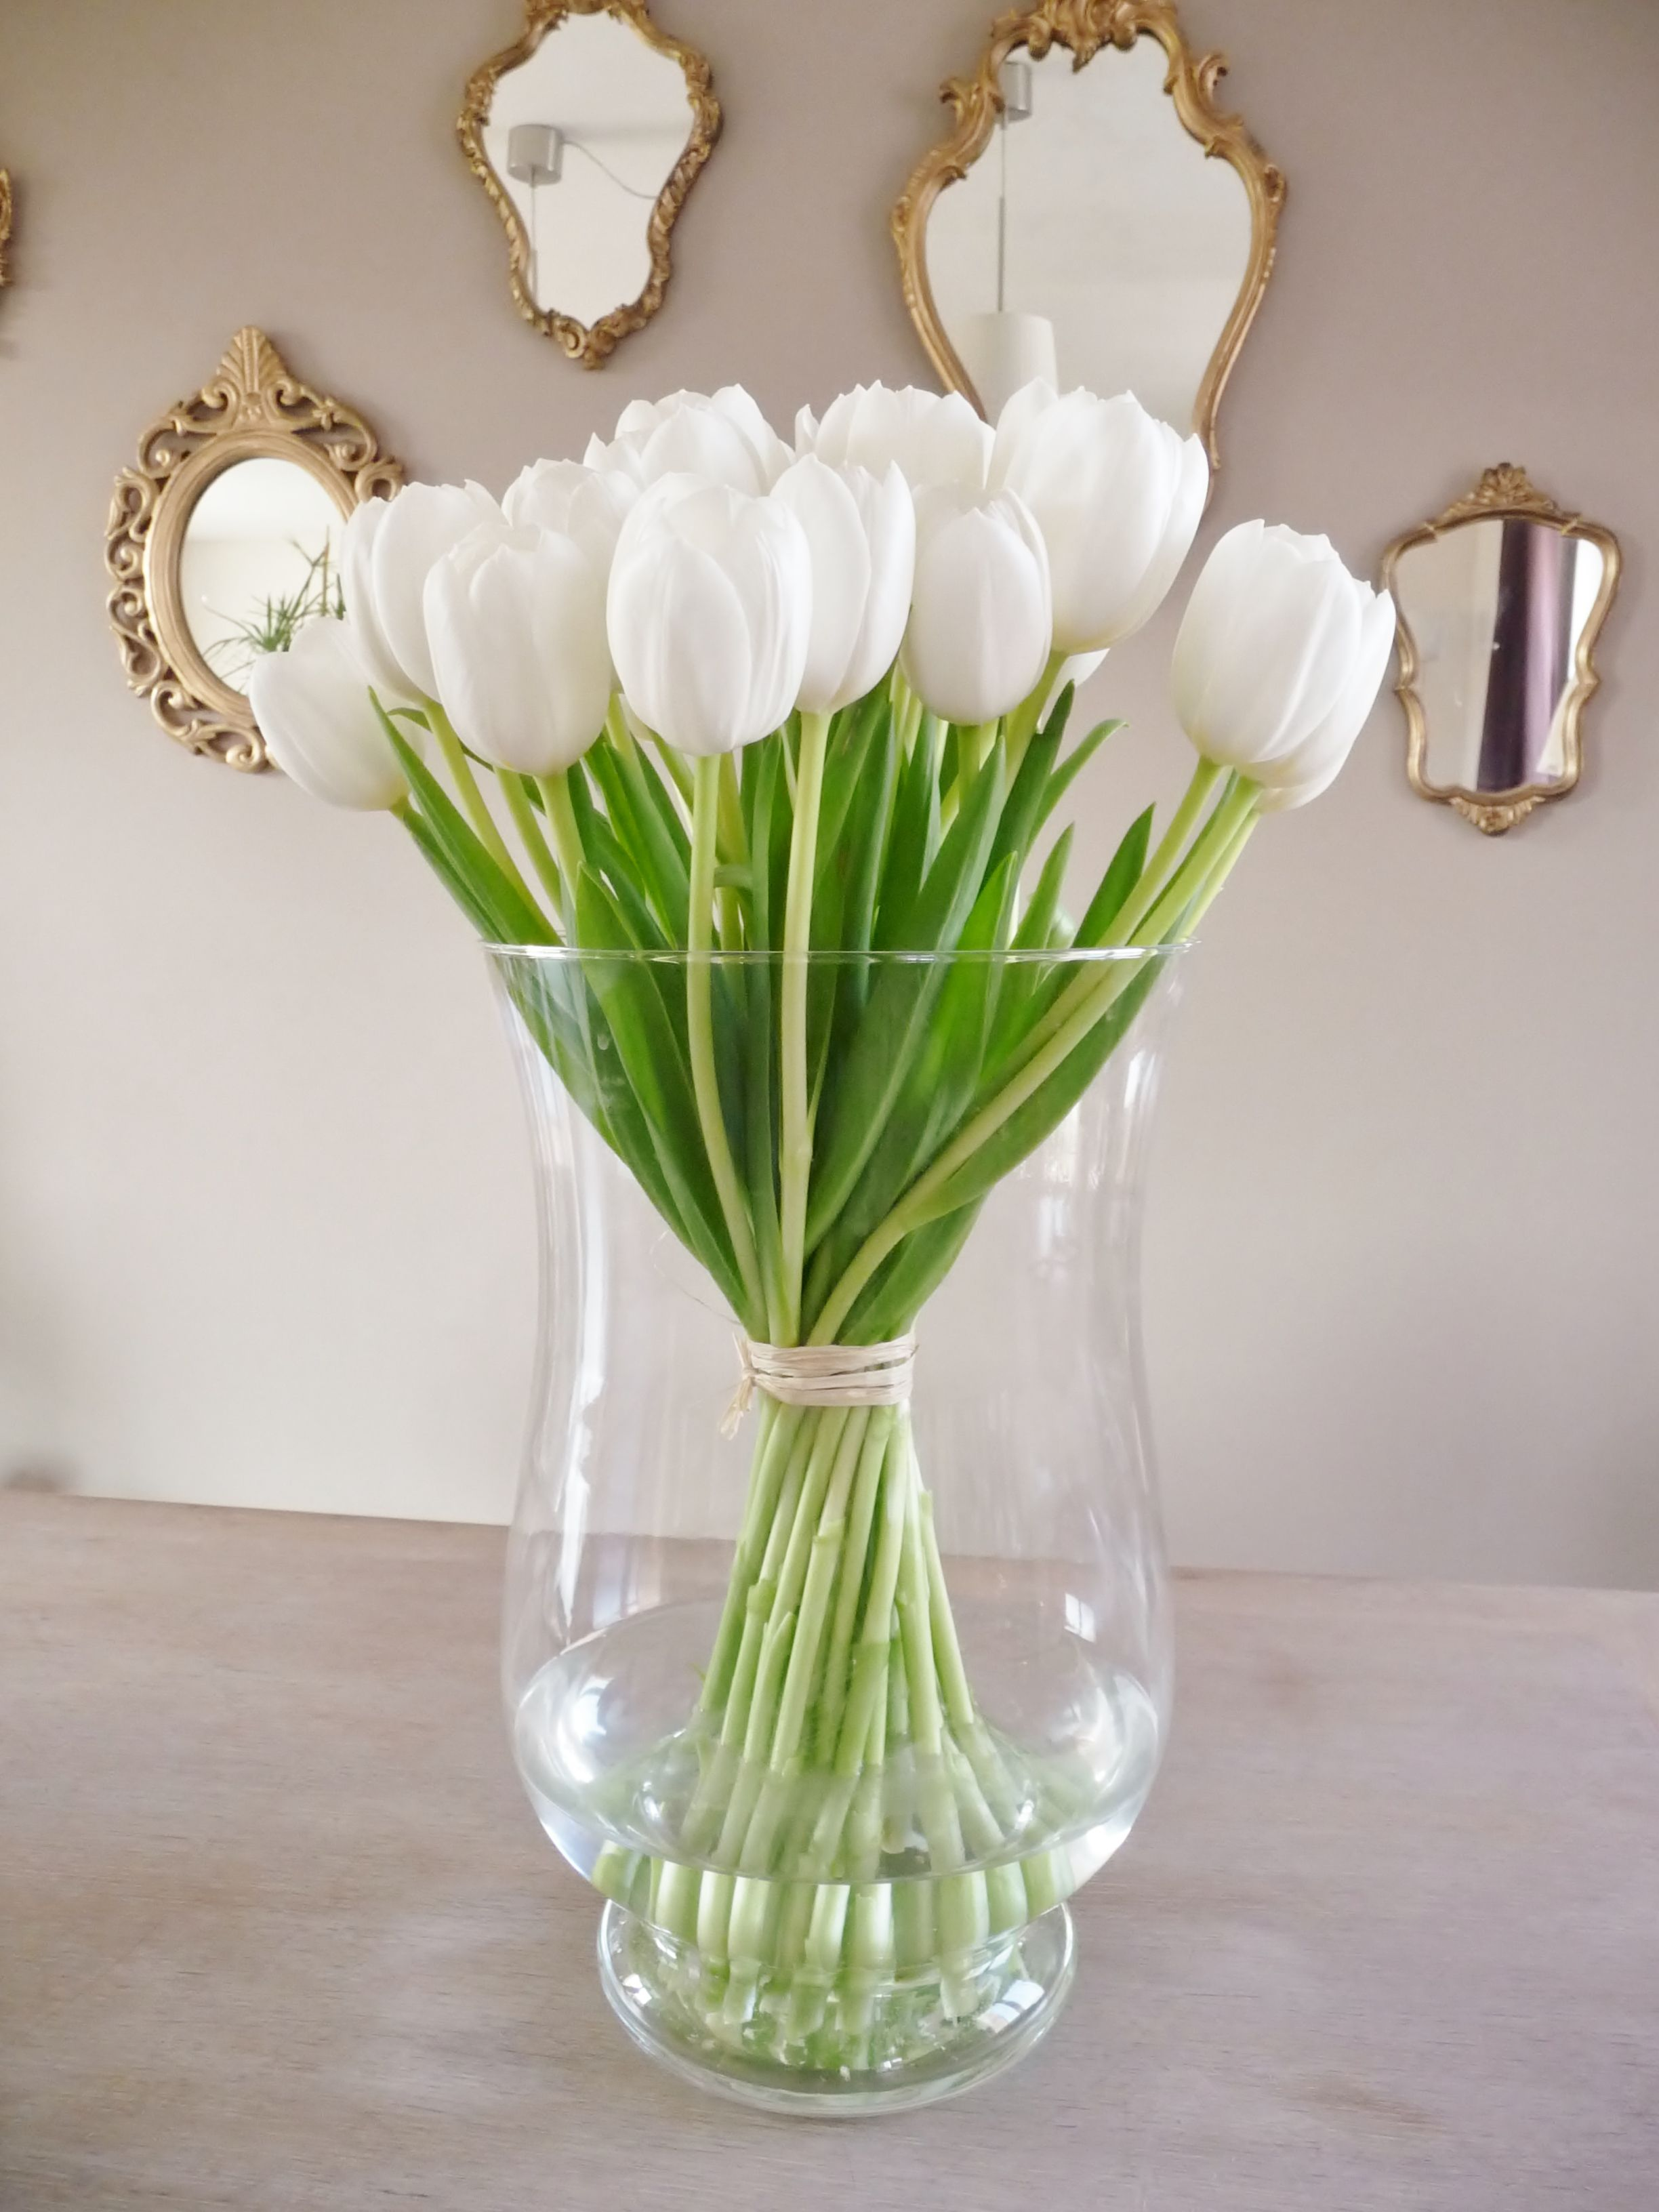 Bouquet de tulipes blanches botany days tulipes tulipes for Bouquet de tulipes